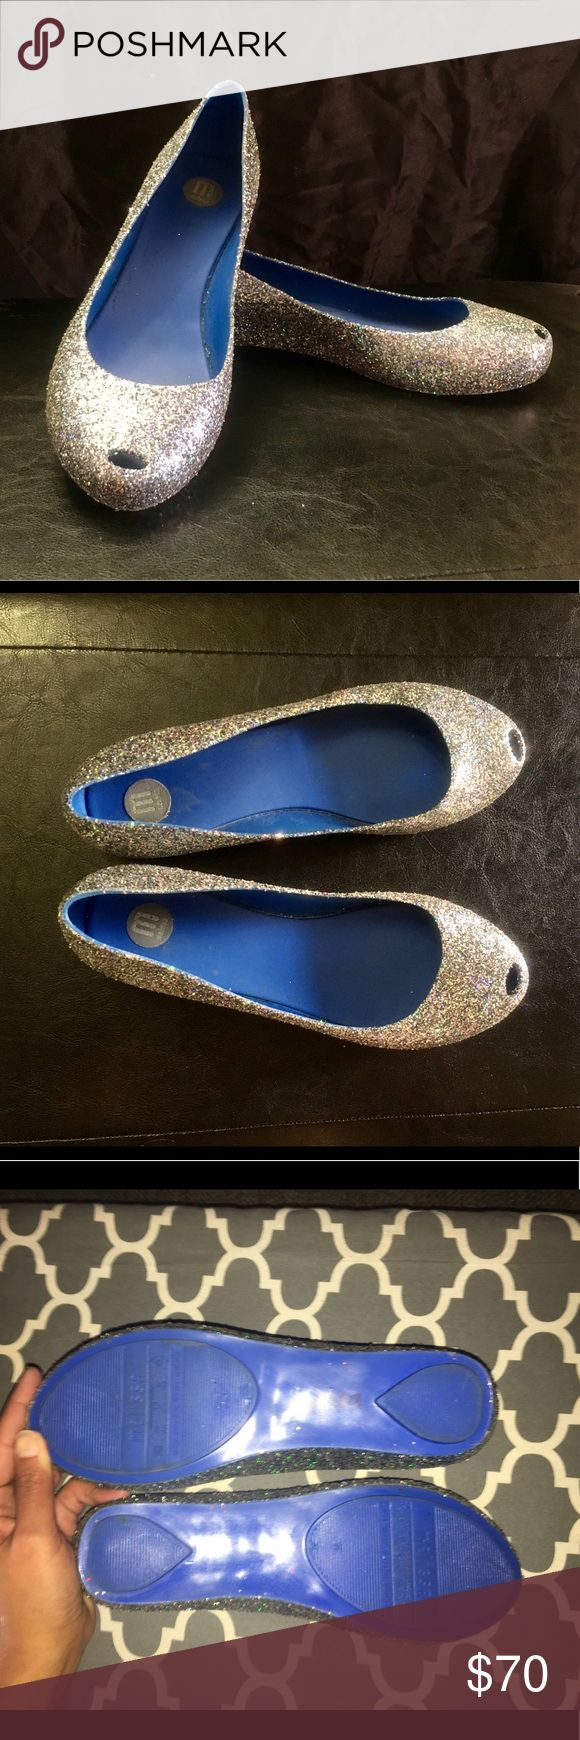 Melissa Glitter Flats w/ Peep Toe Like  Melissa brand Flats COVERED in silvery glitter. Worn Once, & in perfect condition. Made of Sturdy PVC, these shoes are also waterproof. Tiny peep hole at the top of toes. Slip-resistant. Made in Brazil Melissa Shoes Flats & Loafers